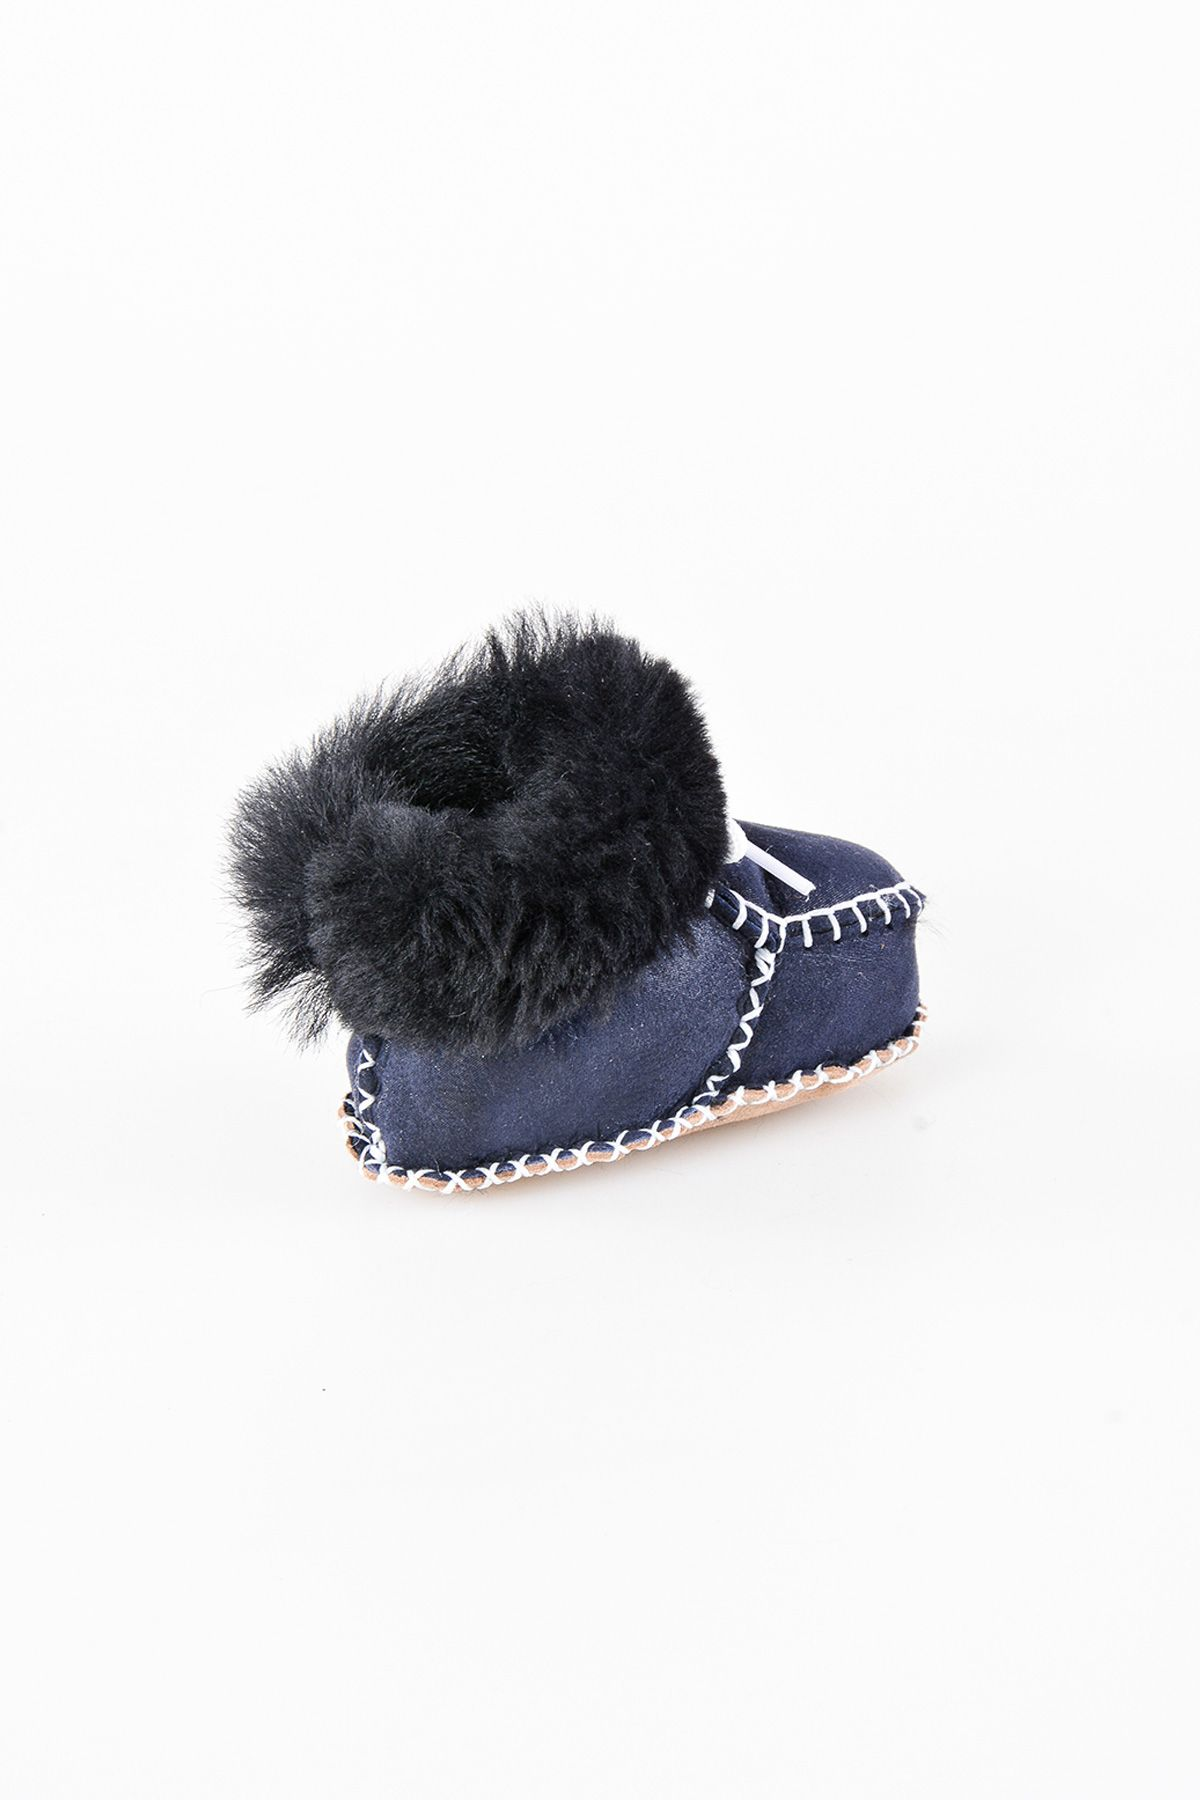 Pegia Shearling Baby's Bootie 141009 Navy blue